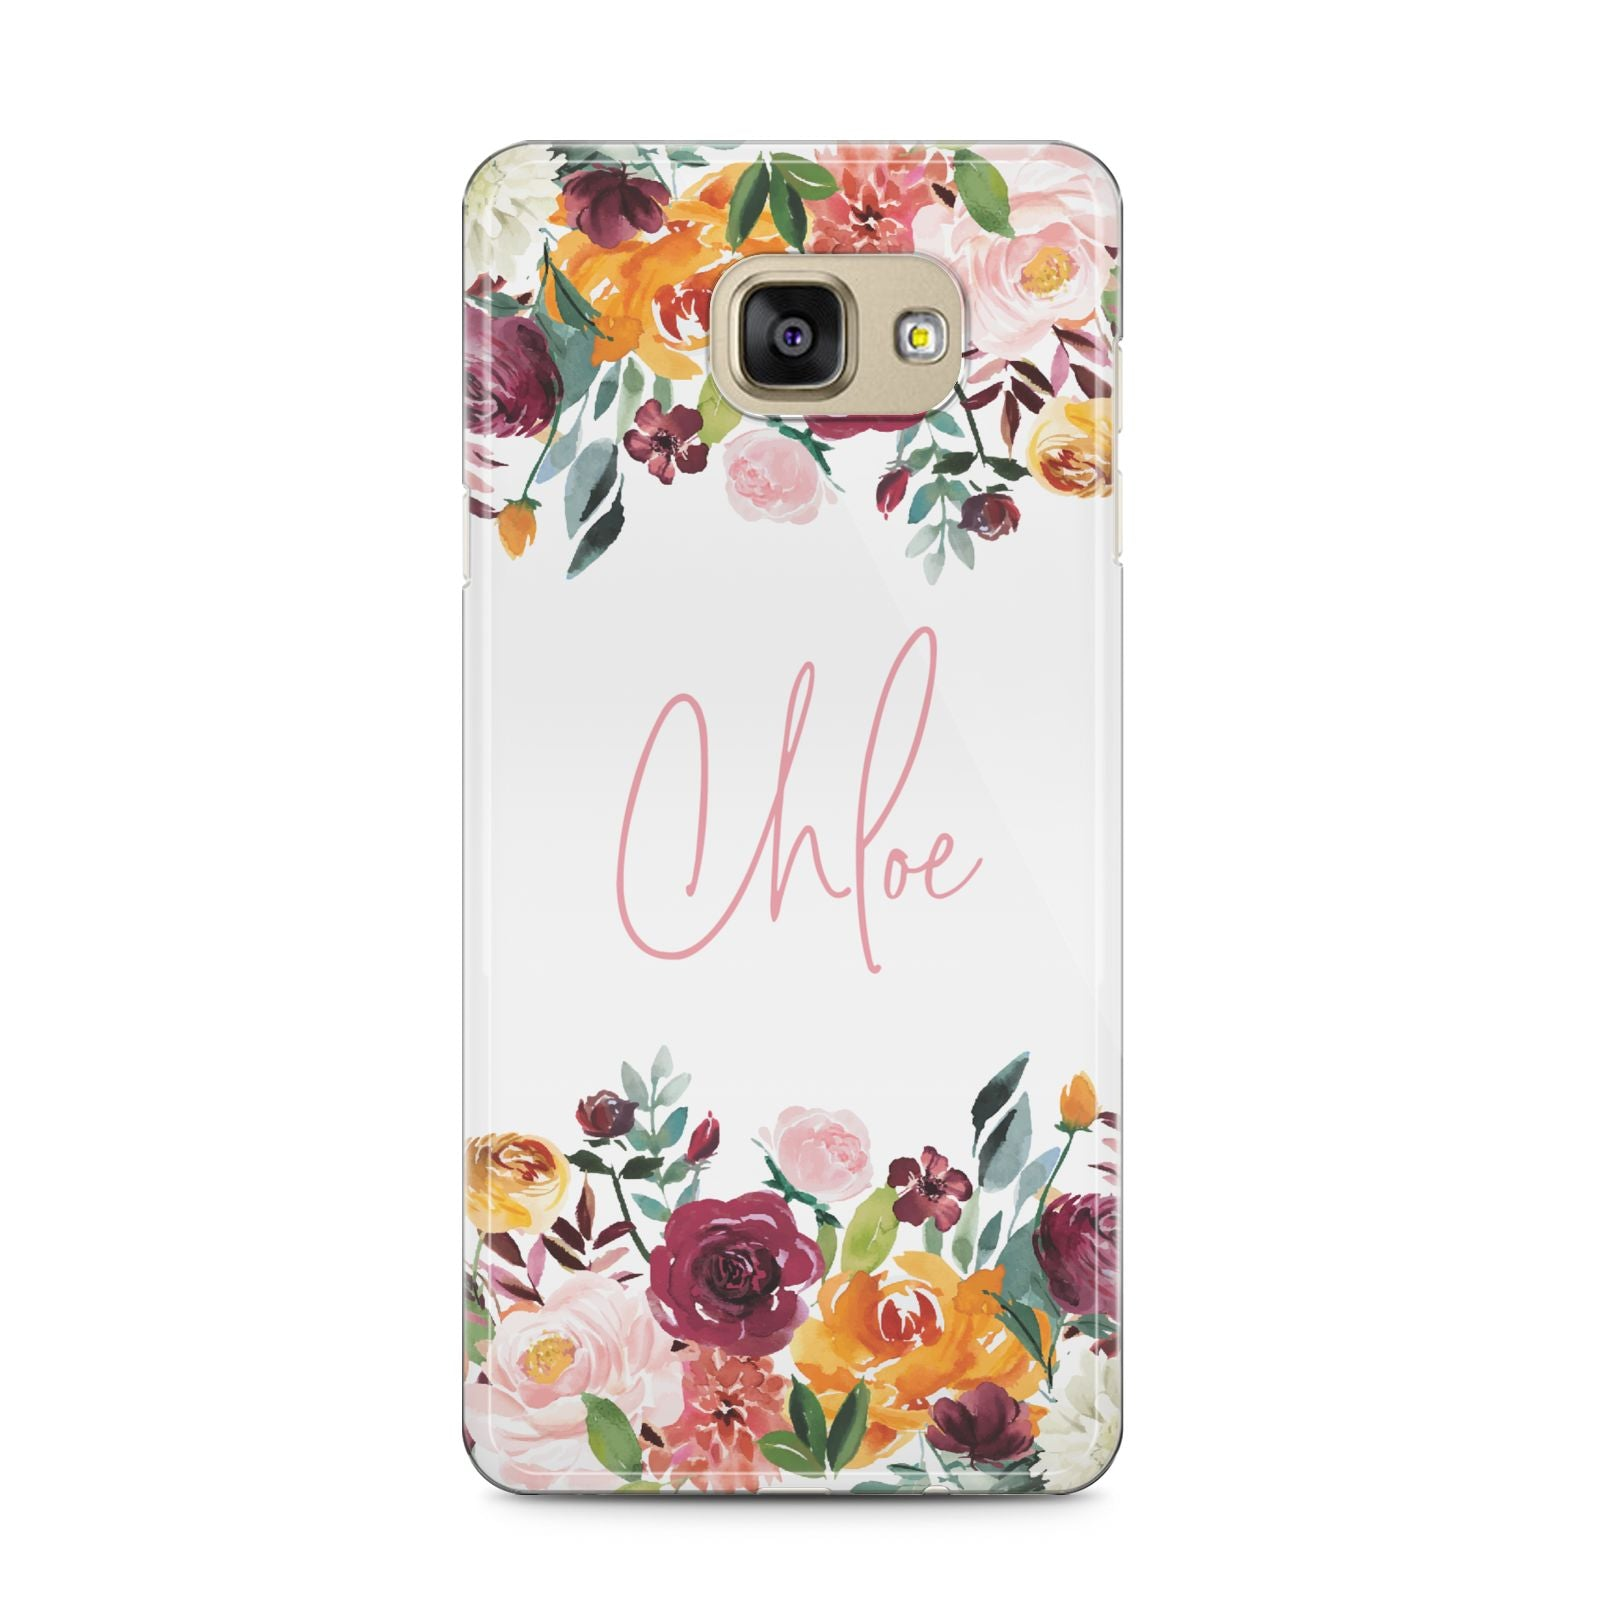 Personalised Name Transparent Flowers Samsung Galaxy A5 2016 Case on gold phone